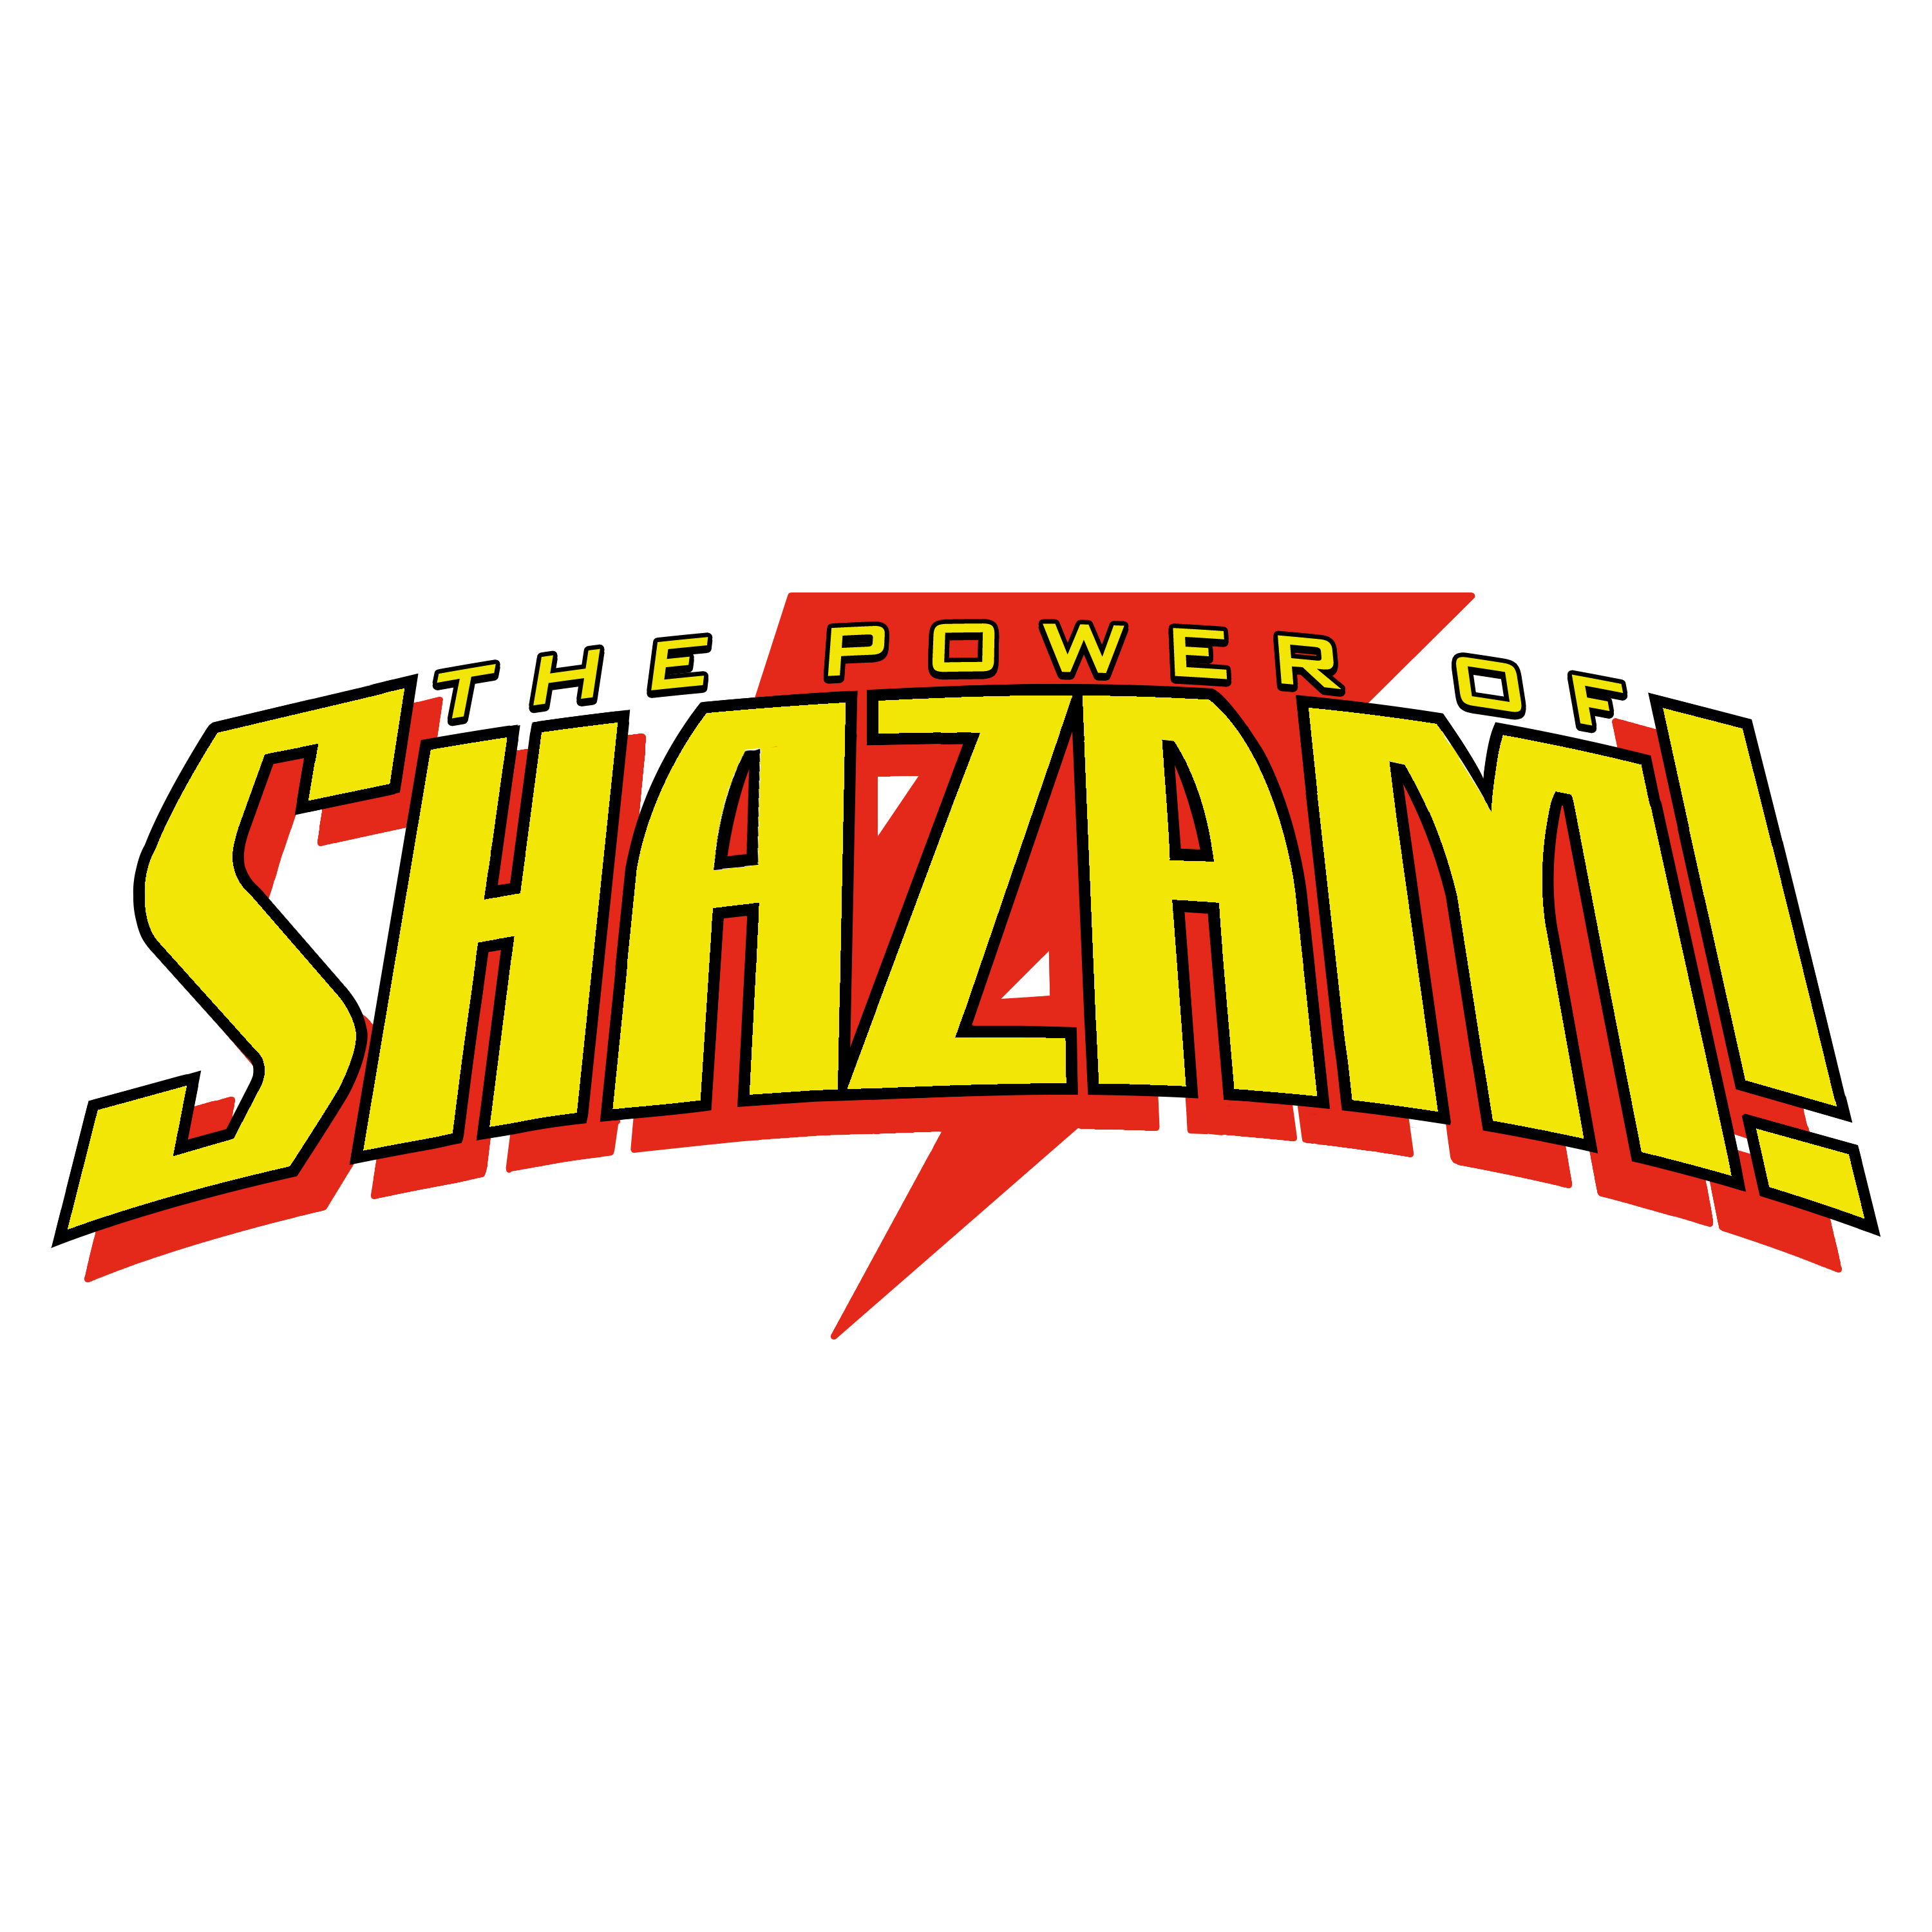 Power of Shazam